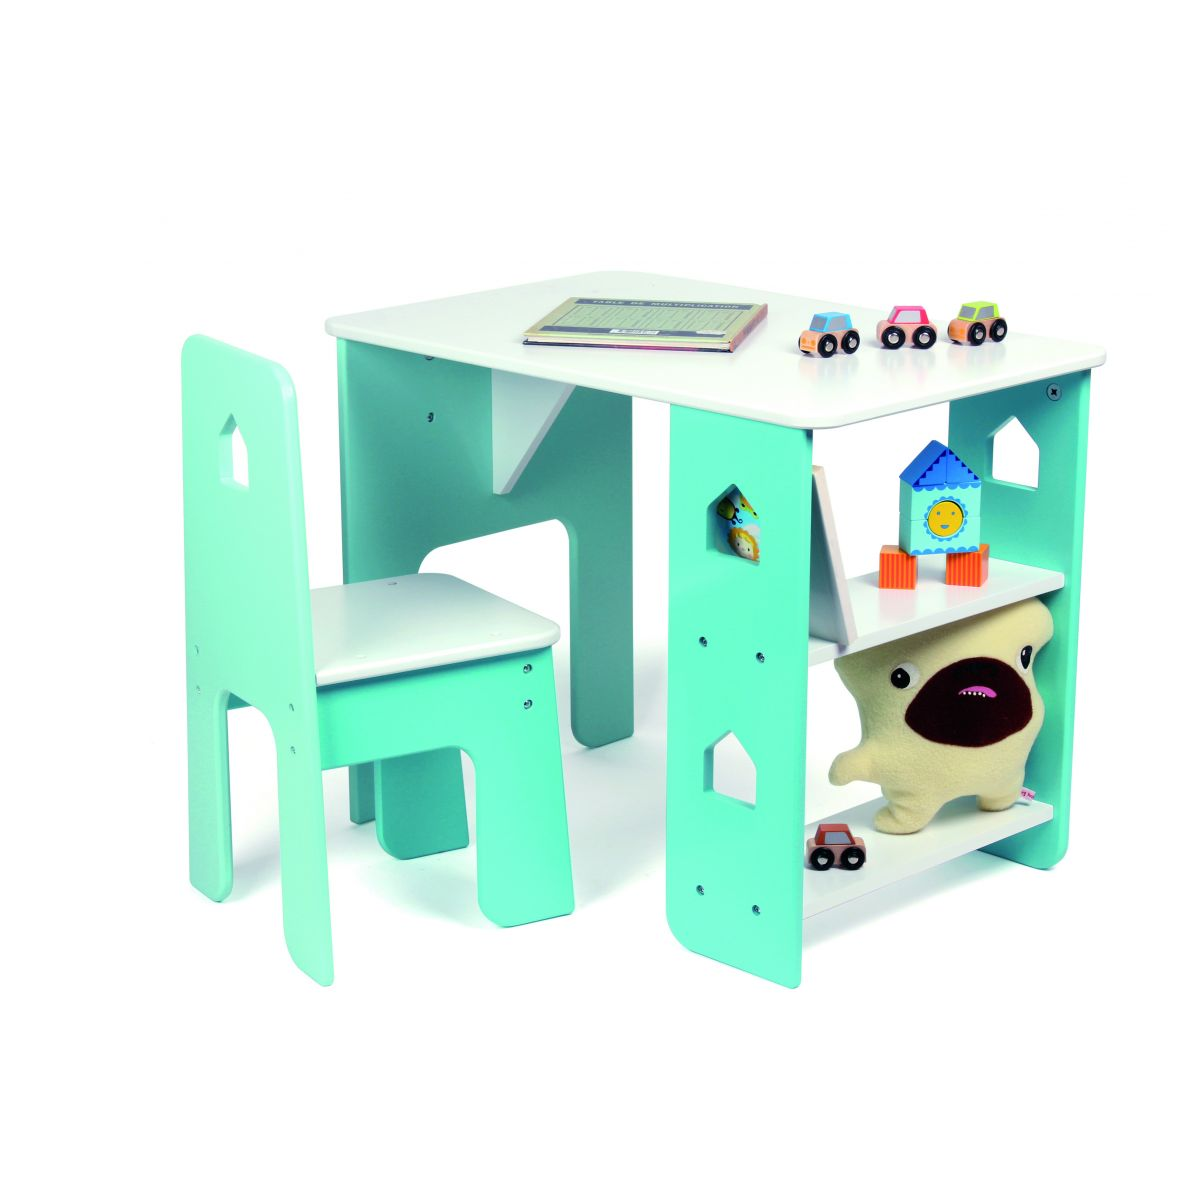 table bureau et chaise pour enfant partir de 3 ans sebio. Black Bedroom Furniture Sets. Home Design Ideas